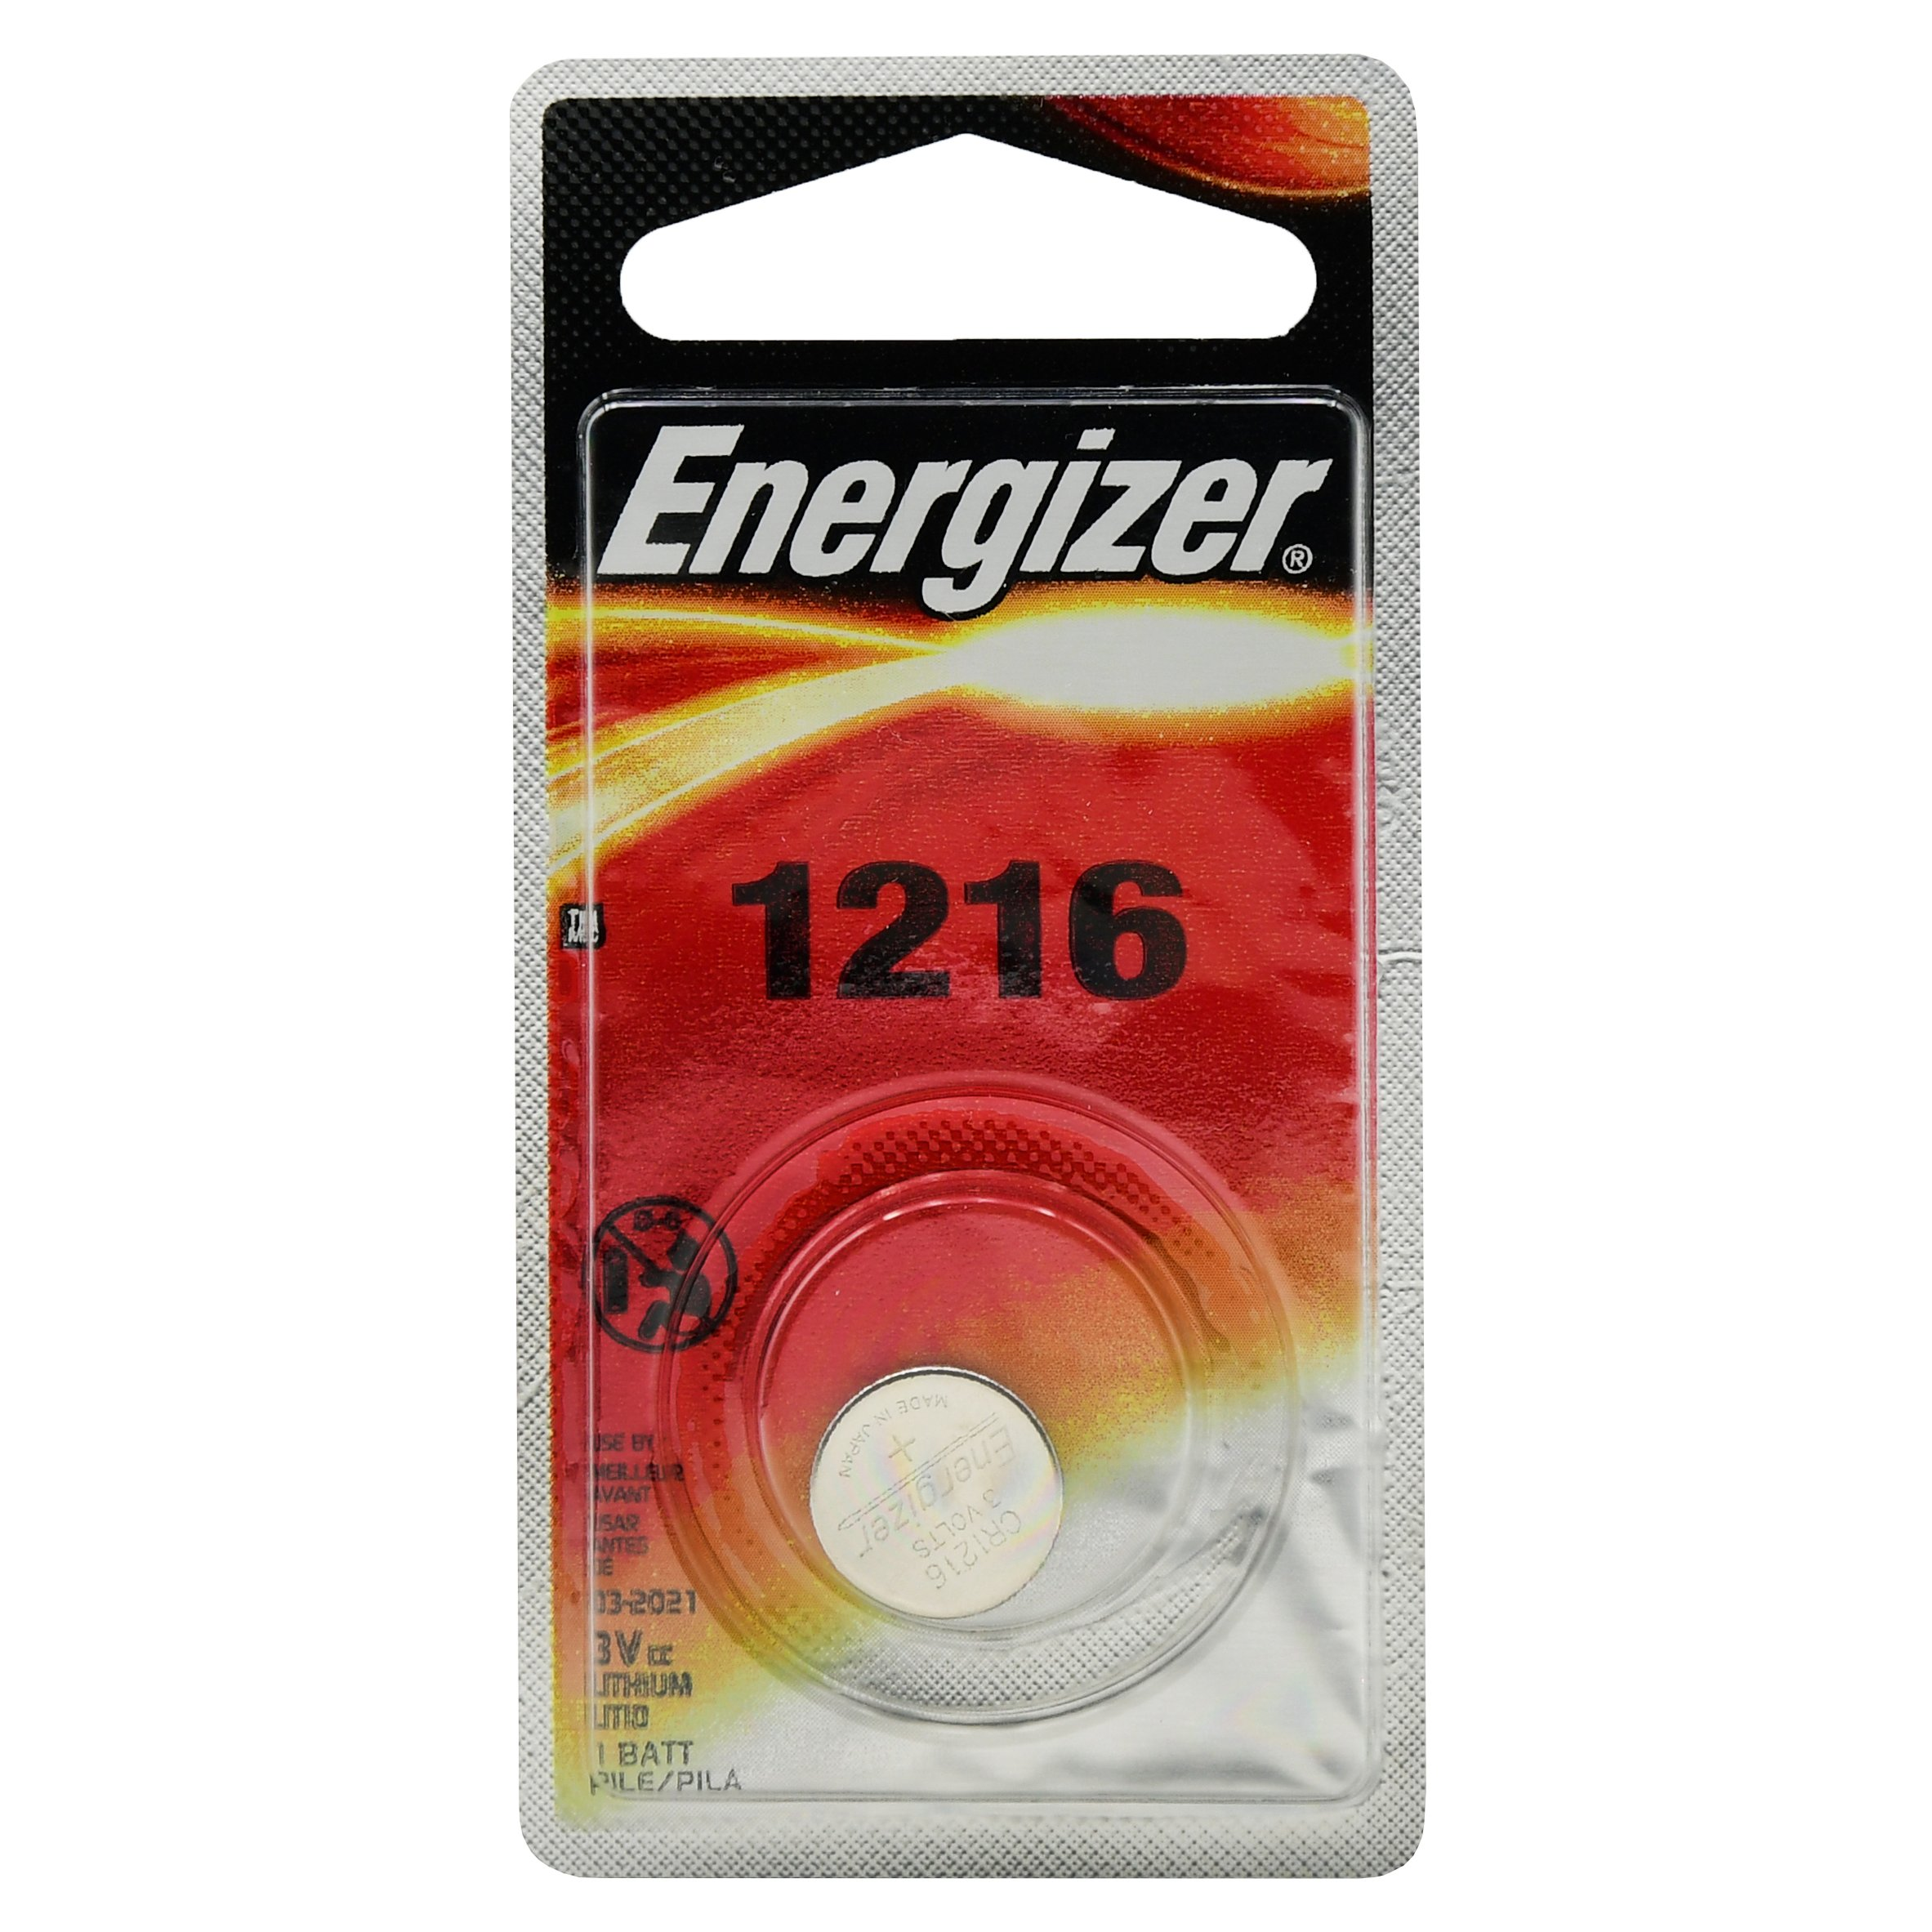 Energizer ECR1216 3V Lithium Button Cell Battery, Pack of 1